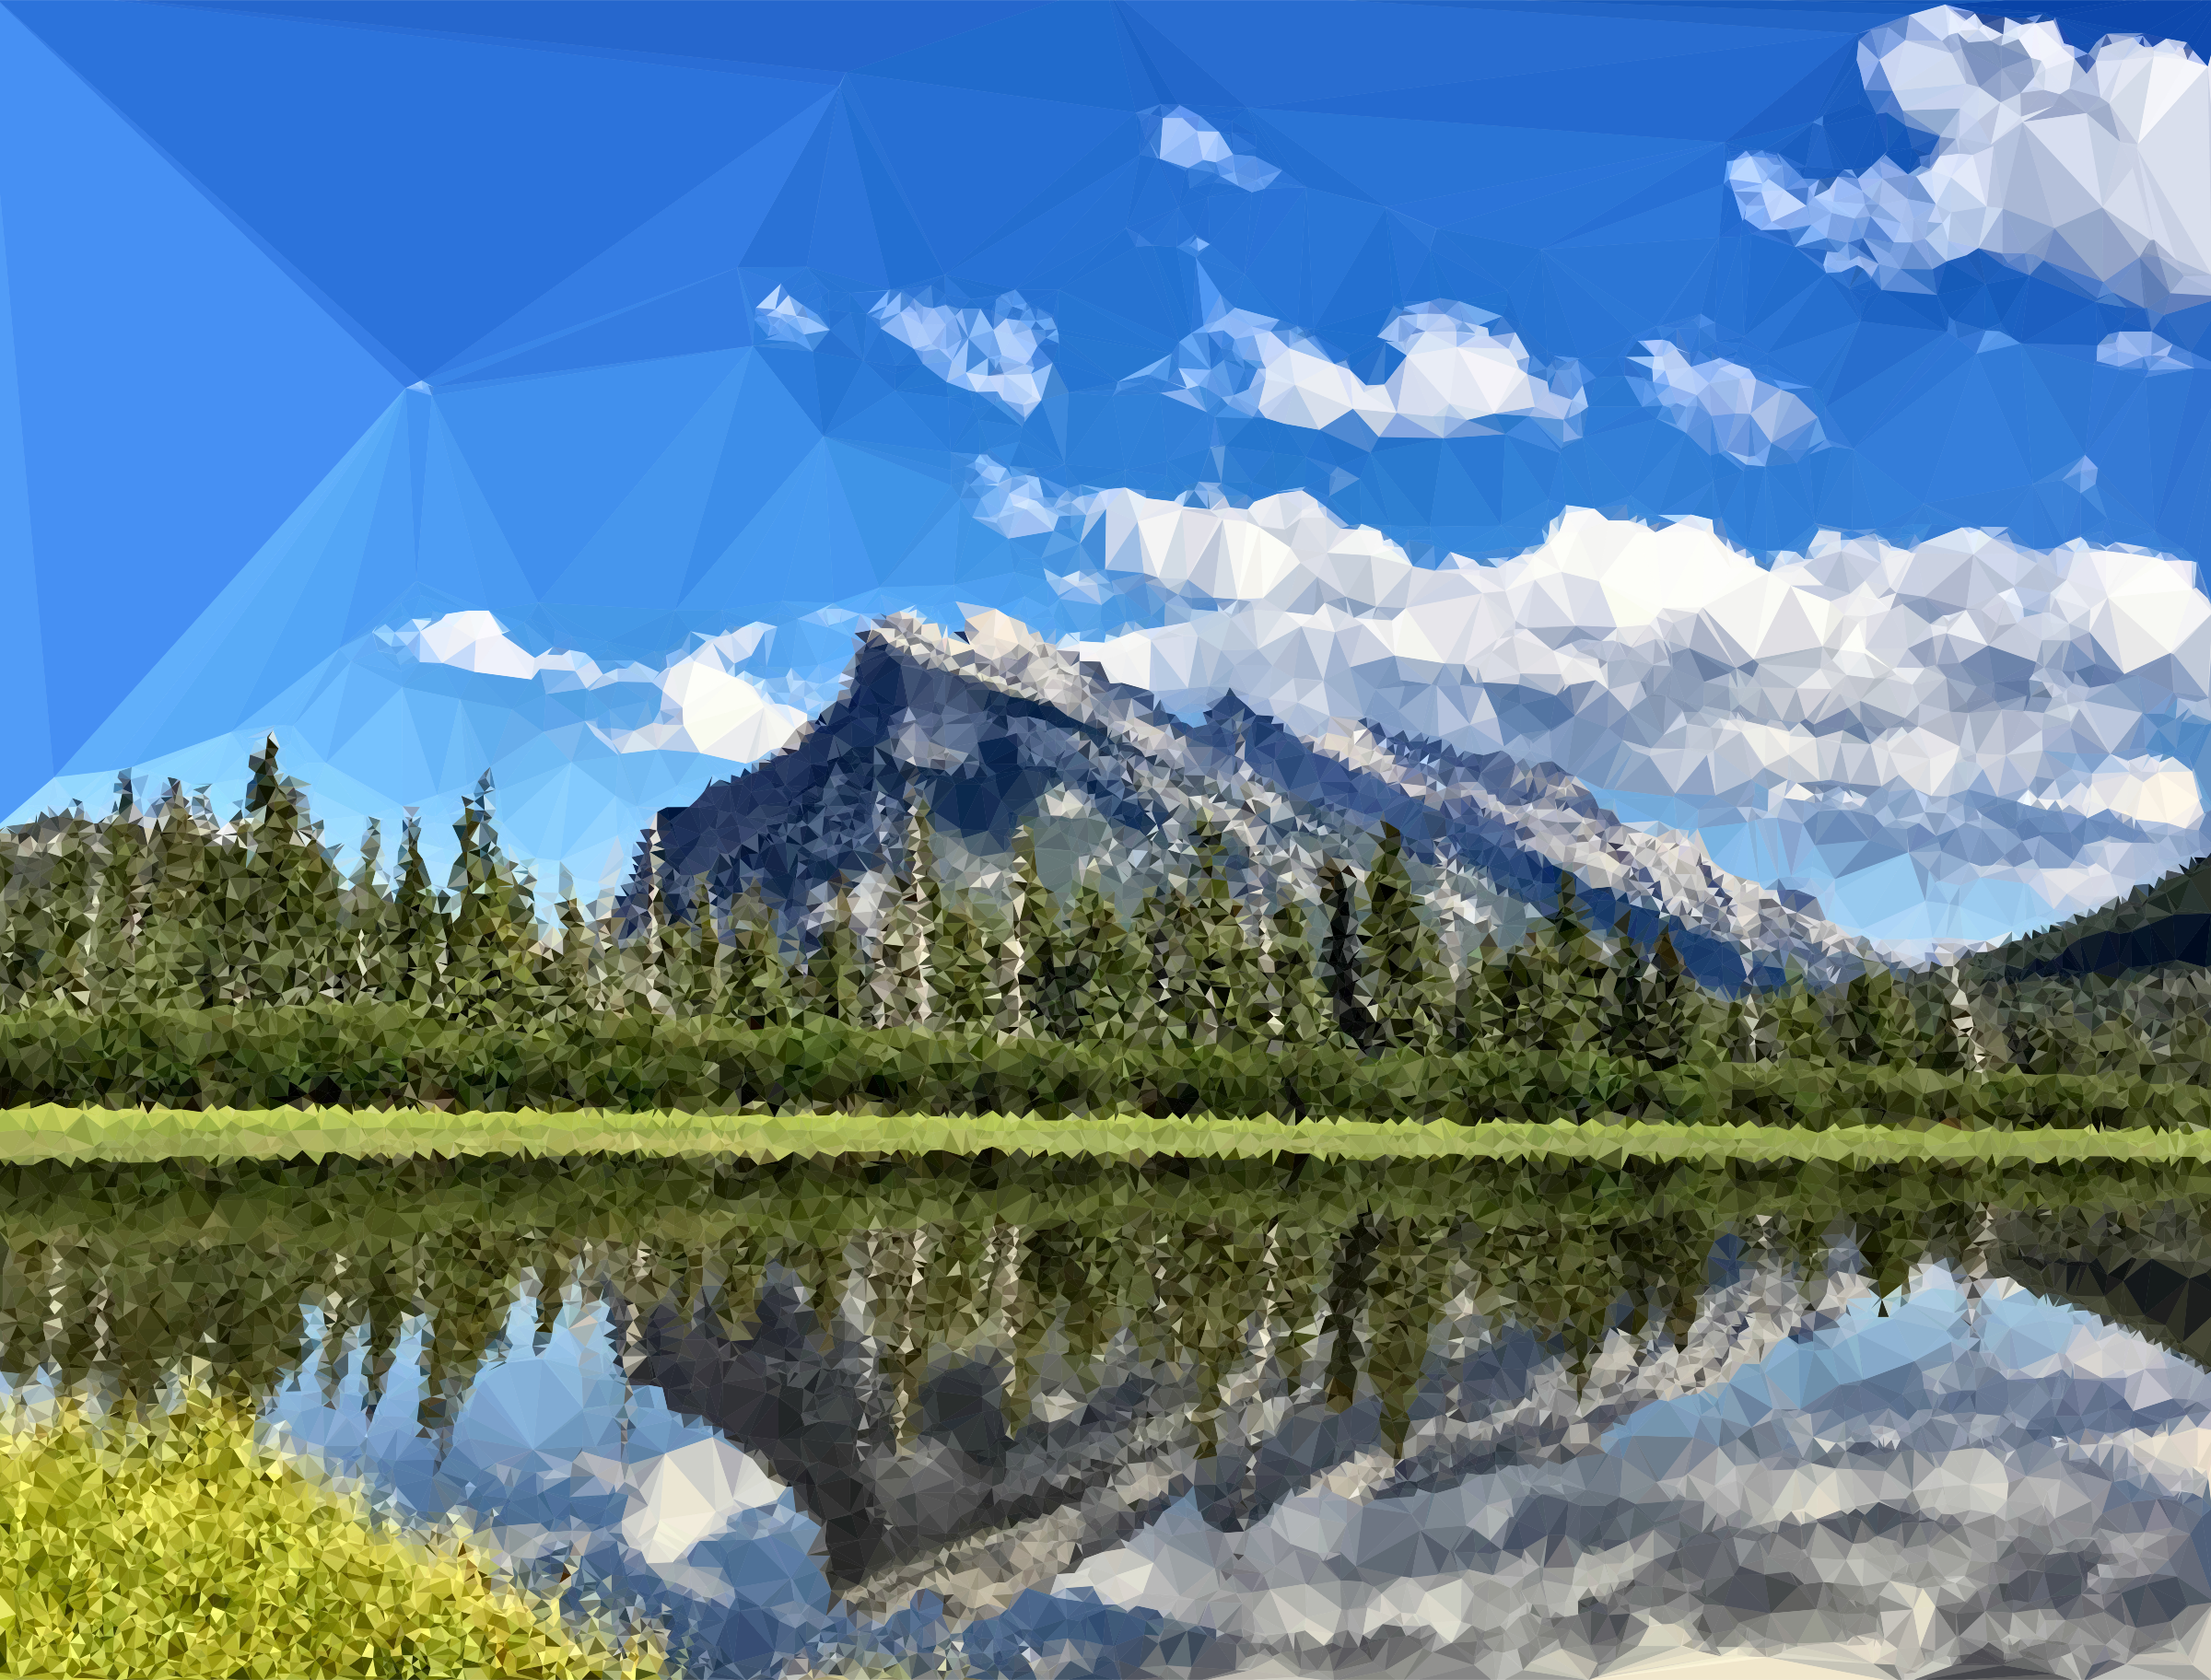 Clipart Low Poly Banff National Park Canada.